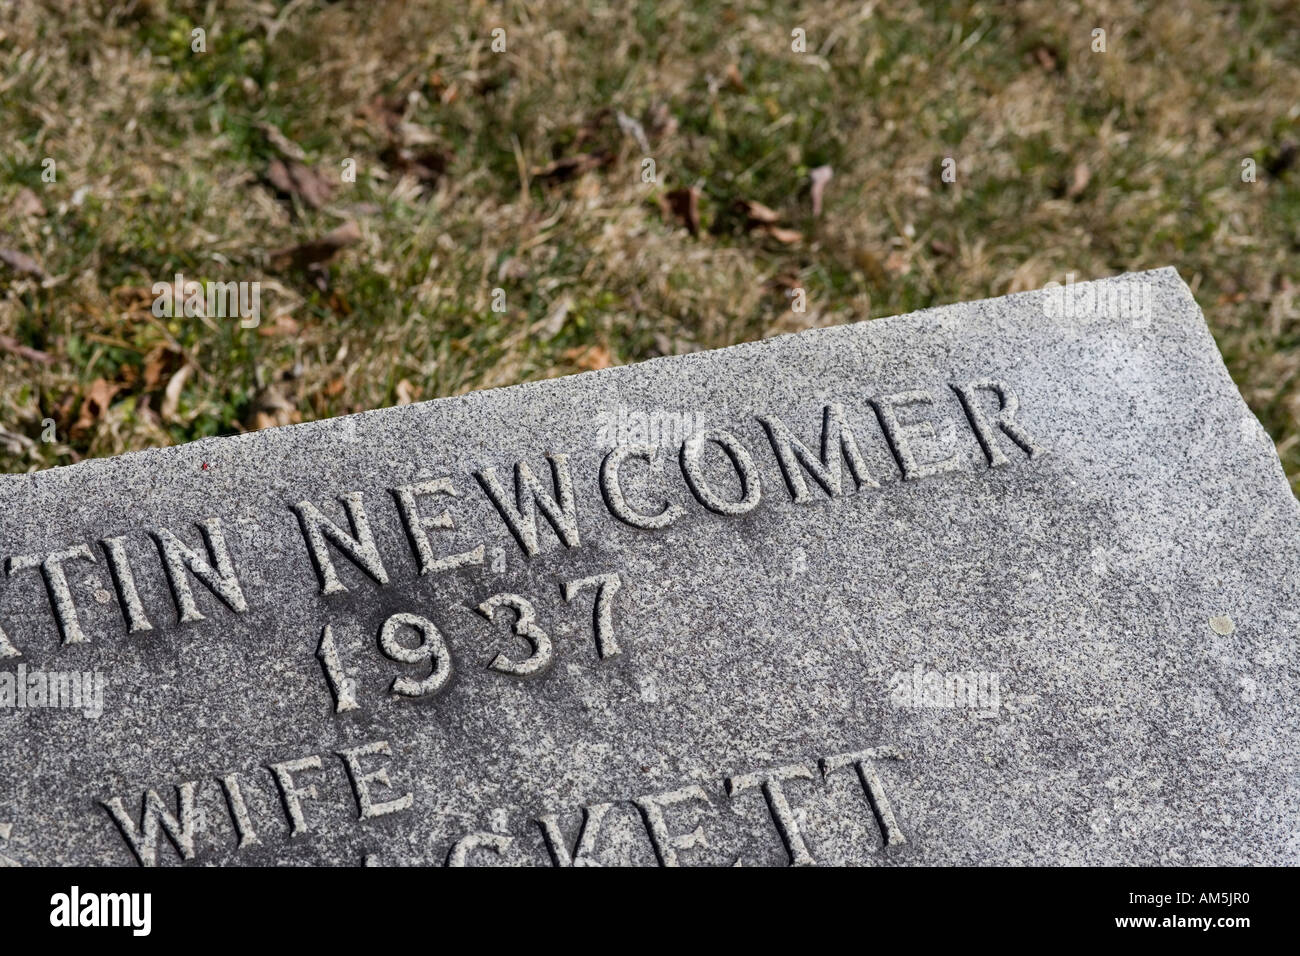 The headstone of someone of immigrant descent called Newcomer. - Stock Image